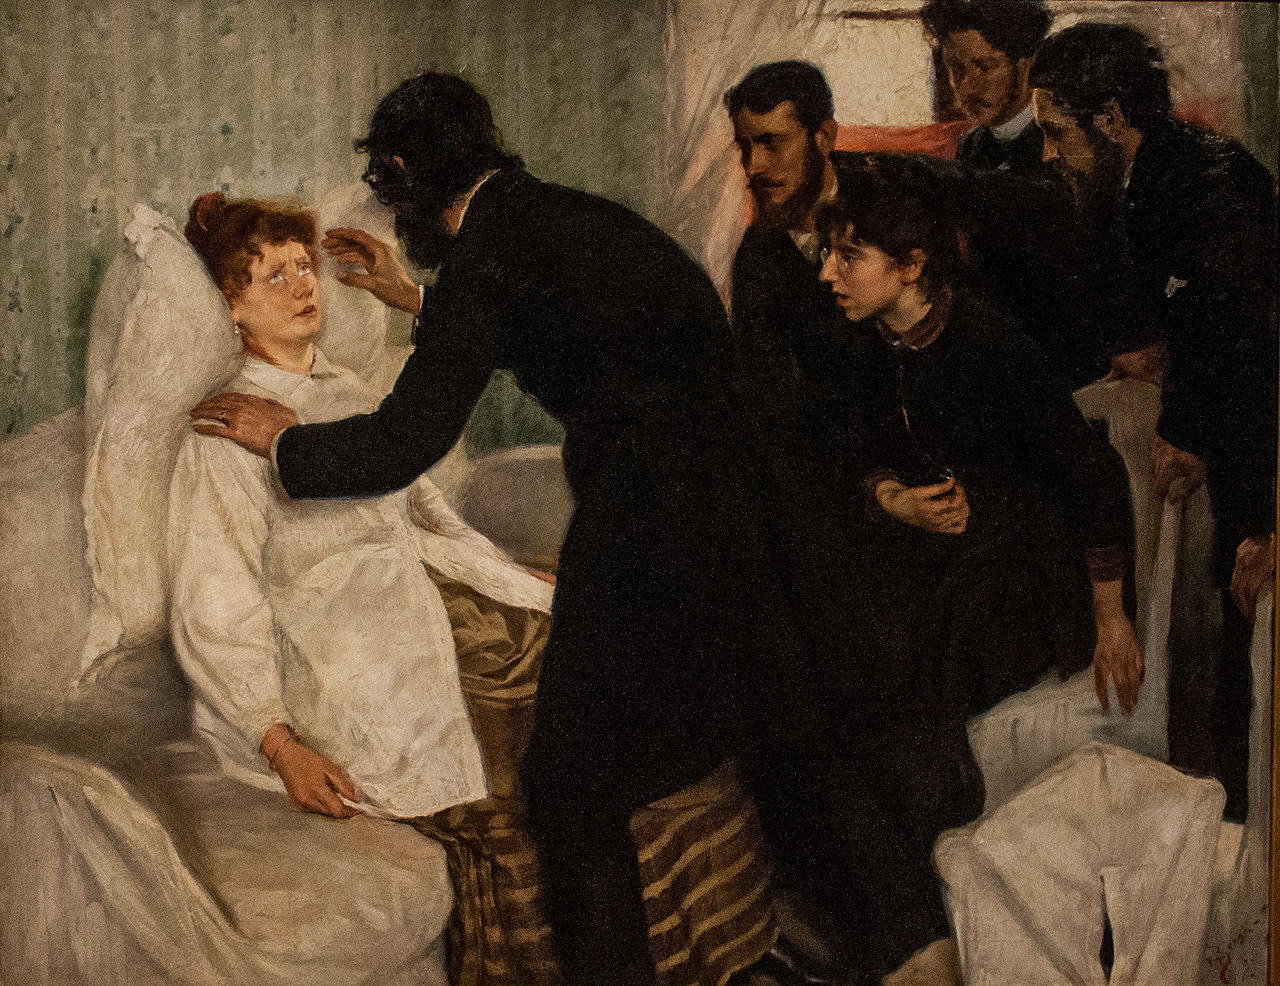 Hypnotic séance, 1887, Richard Bergh (1858-1919), Nationalmuseum Stockholm. Сеанс гипноза1887, Ричард Берг (1858-1919), Nationalmuseum Stockholm